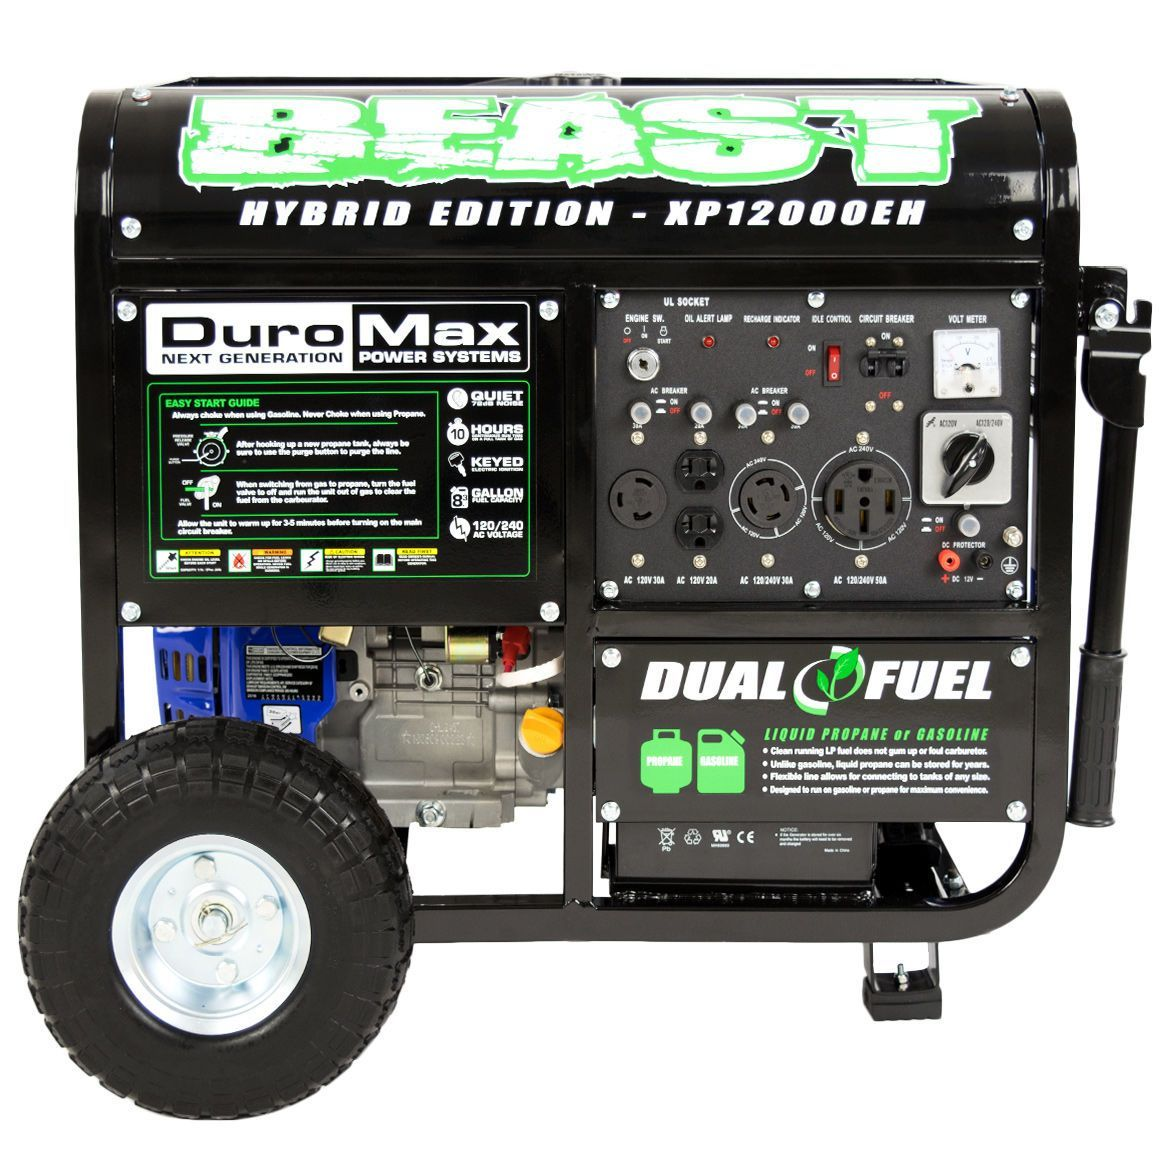 The Duromax Hybrid Dual Fuel Xp12000eh 12000 Watt Generator Offers Circuit Breaker Dc Maximum Versatility And Will Have You Prepared For Any Power Outages